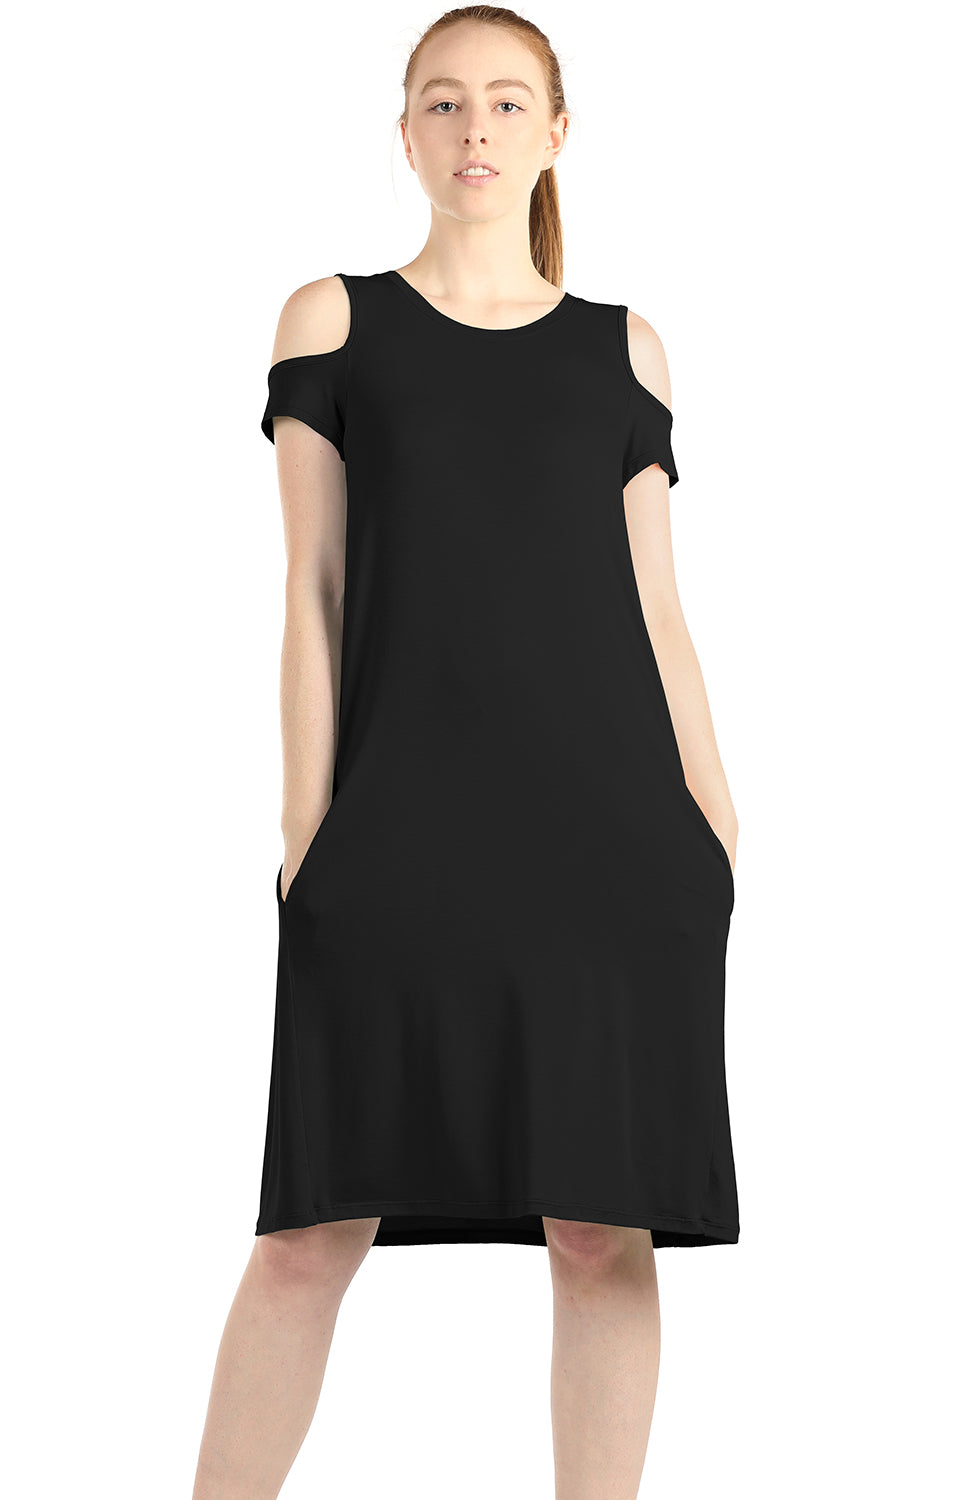 icyzone Casual Summer Dress for Women - Cold Shoulder T-Shirt Midi Dresses with Pockets